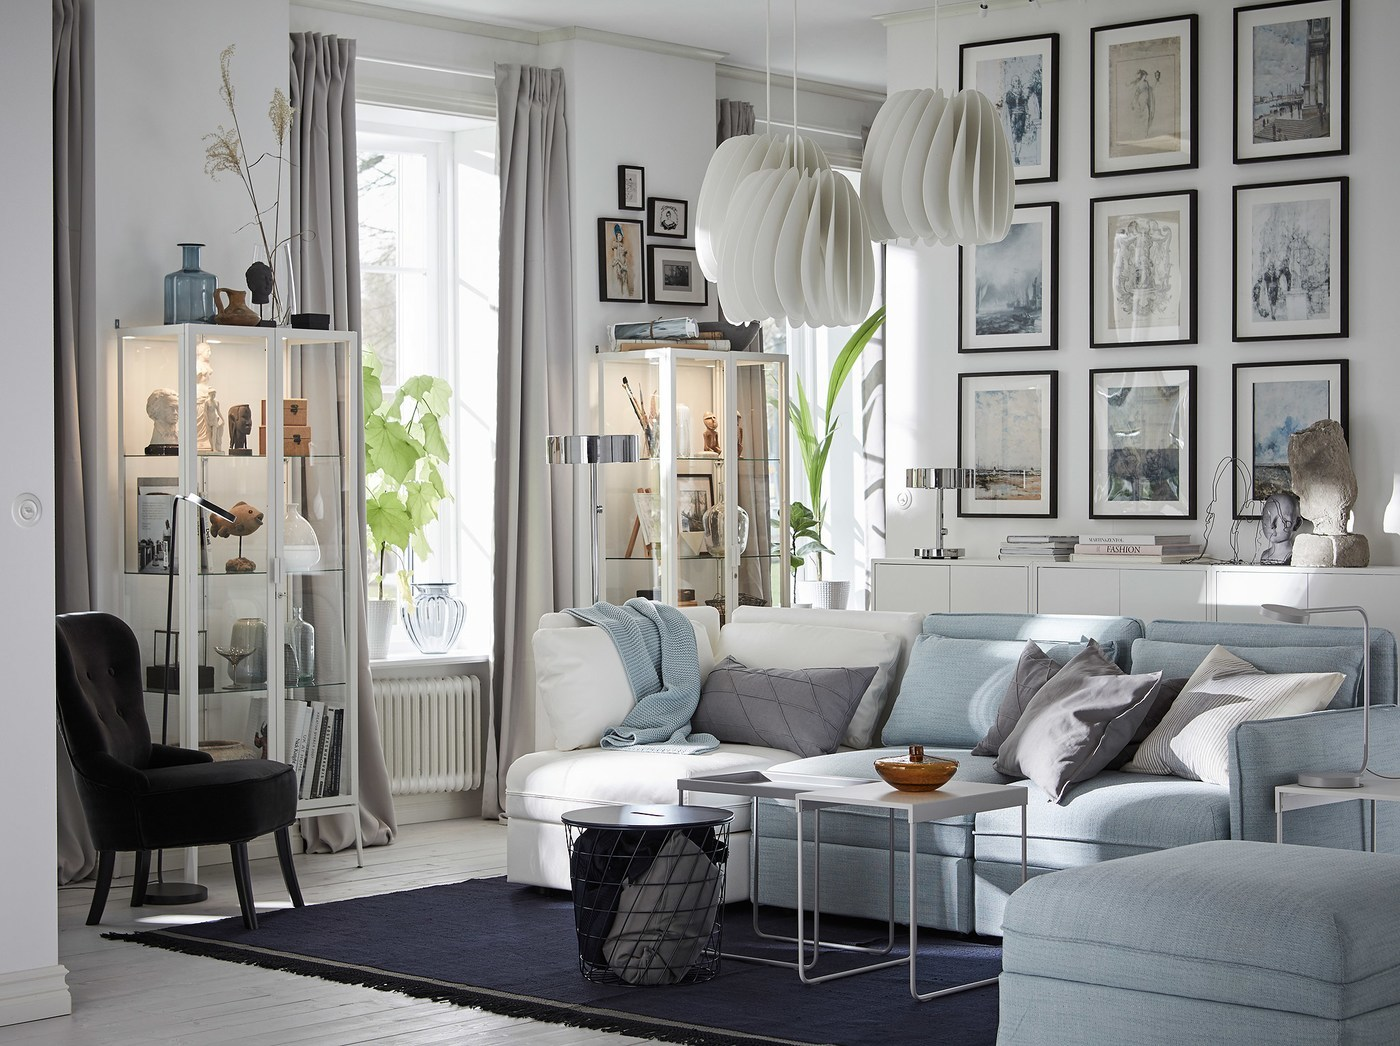 IKEA VALLENTUNA light blue and white modular sofa combined to make a 3-seat sofa in a living room with many picture frames and displayed items in MILSBO glass cabinets.